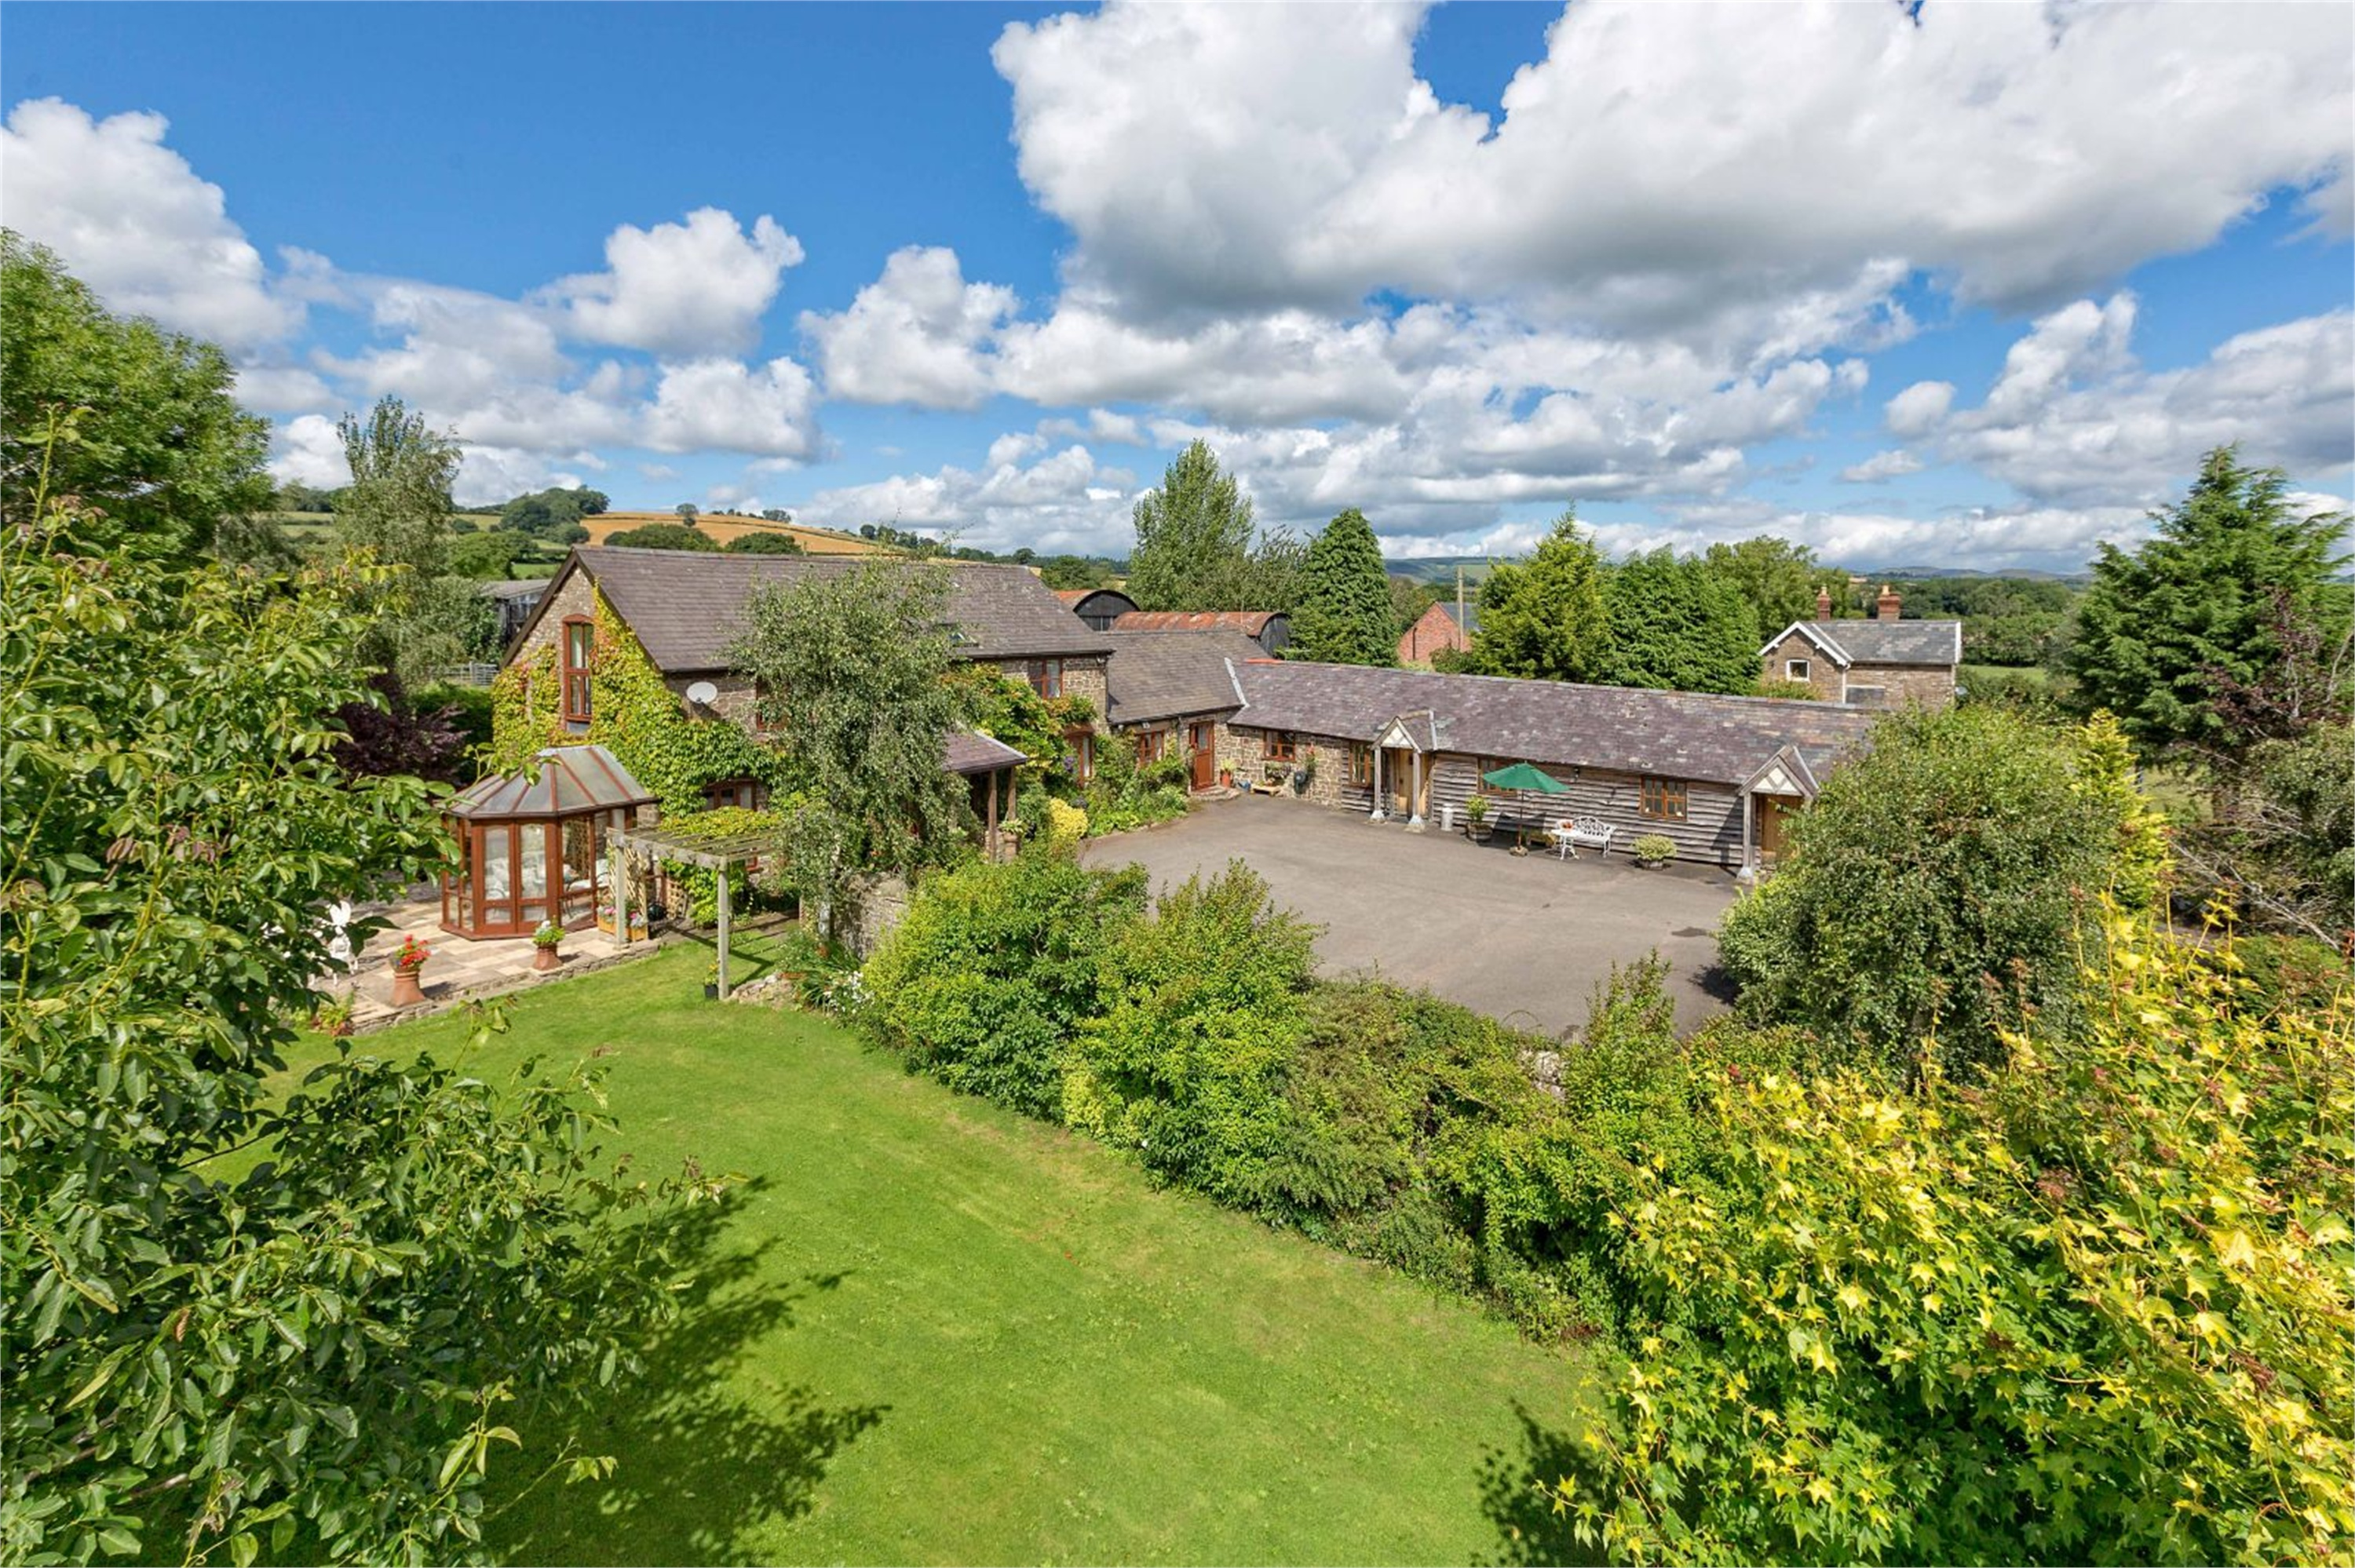 Highgrove Farm, Long Lane, Sibdon Carwood, Craven Arms, Shropshire, SY7